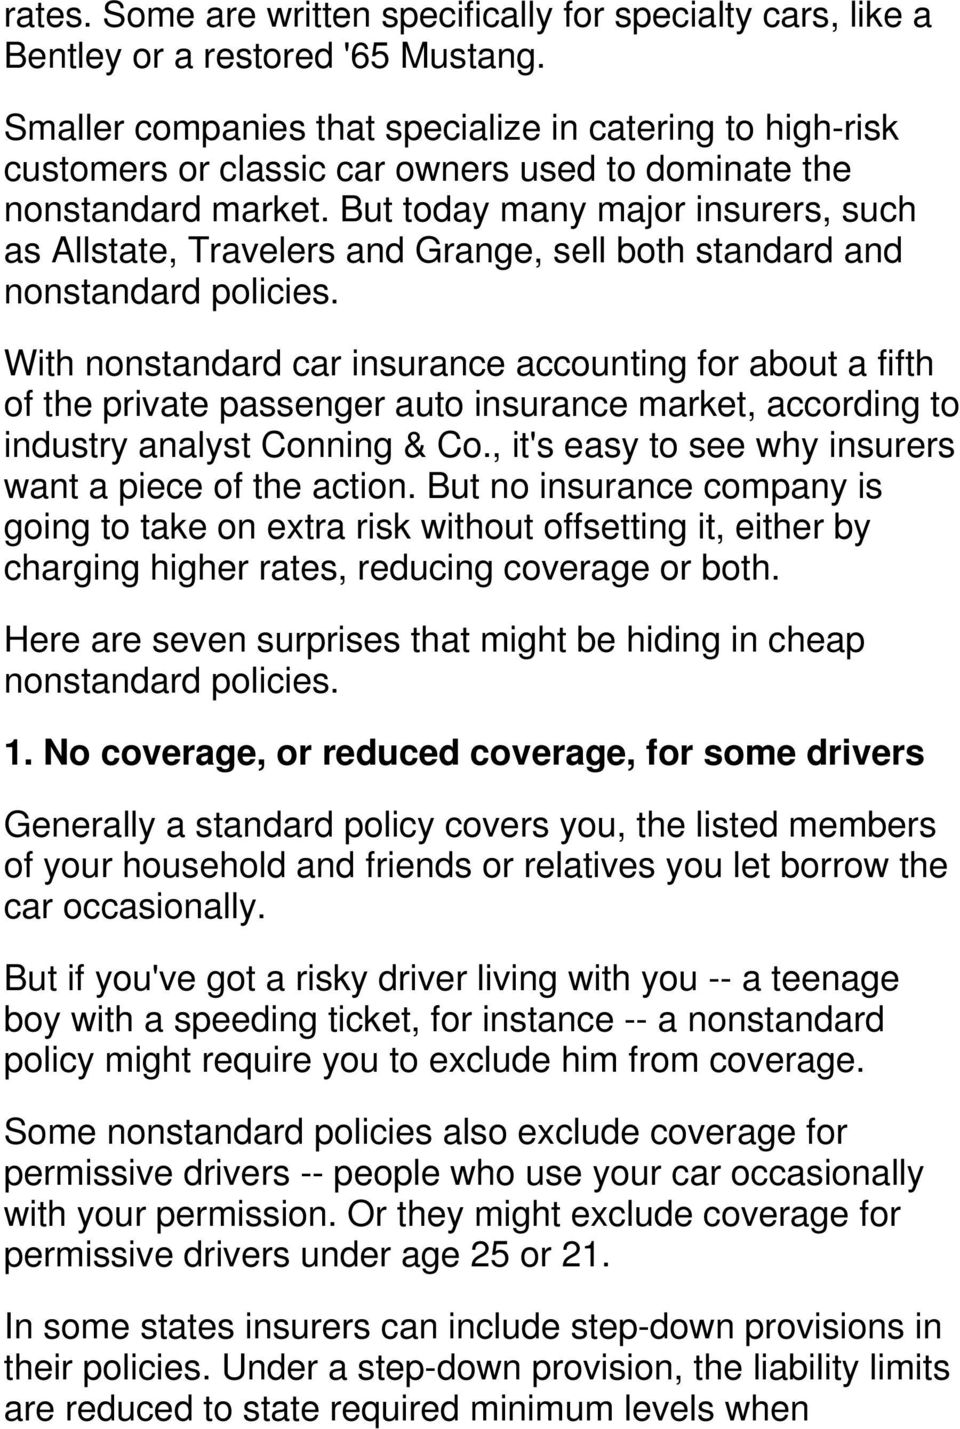 But today many major insurers, such as Allstate, Travelers and Grange, sell both standard and nonstandard policies.